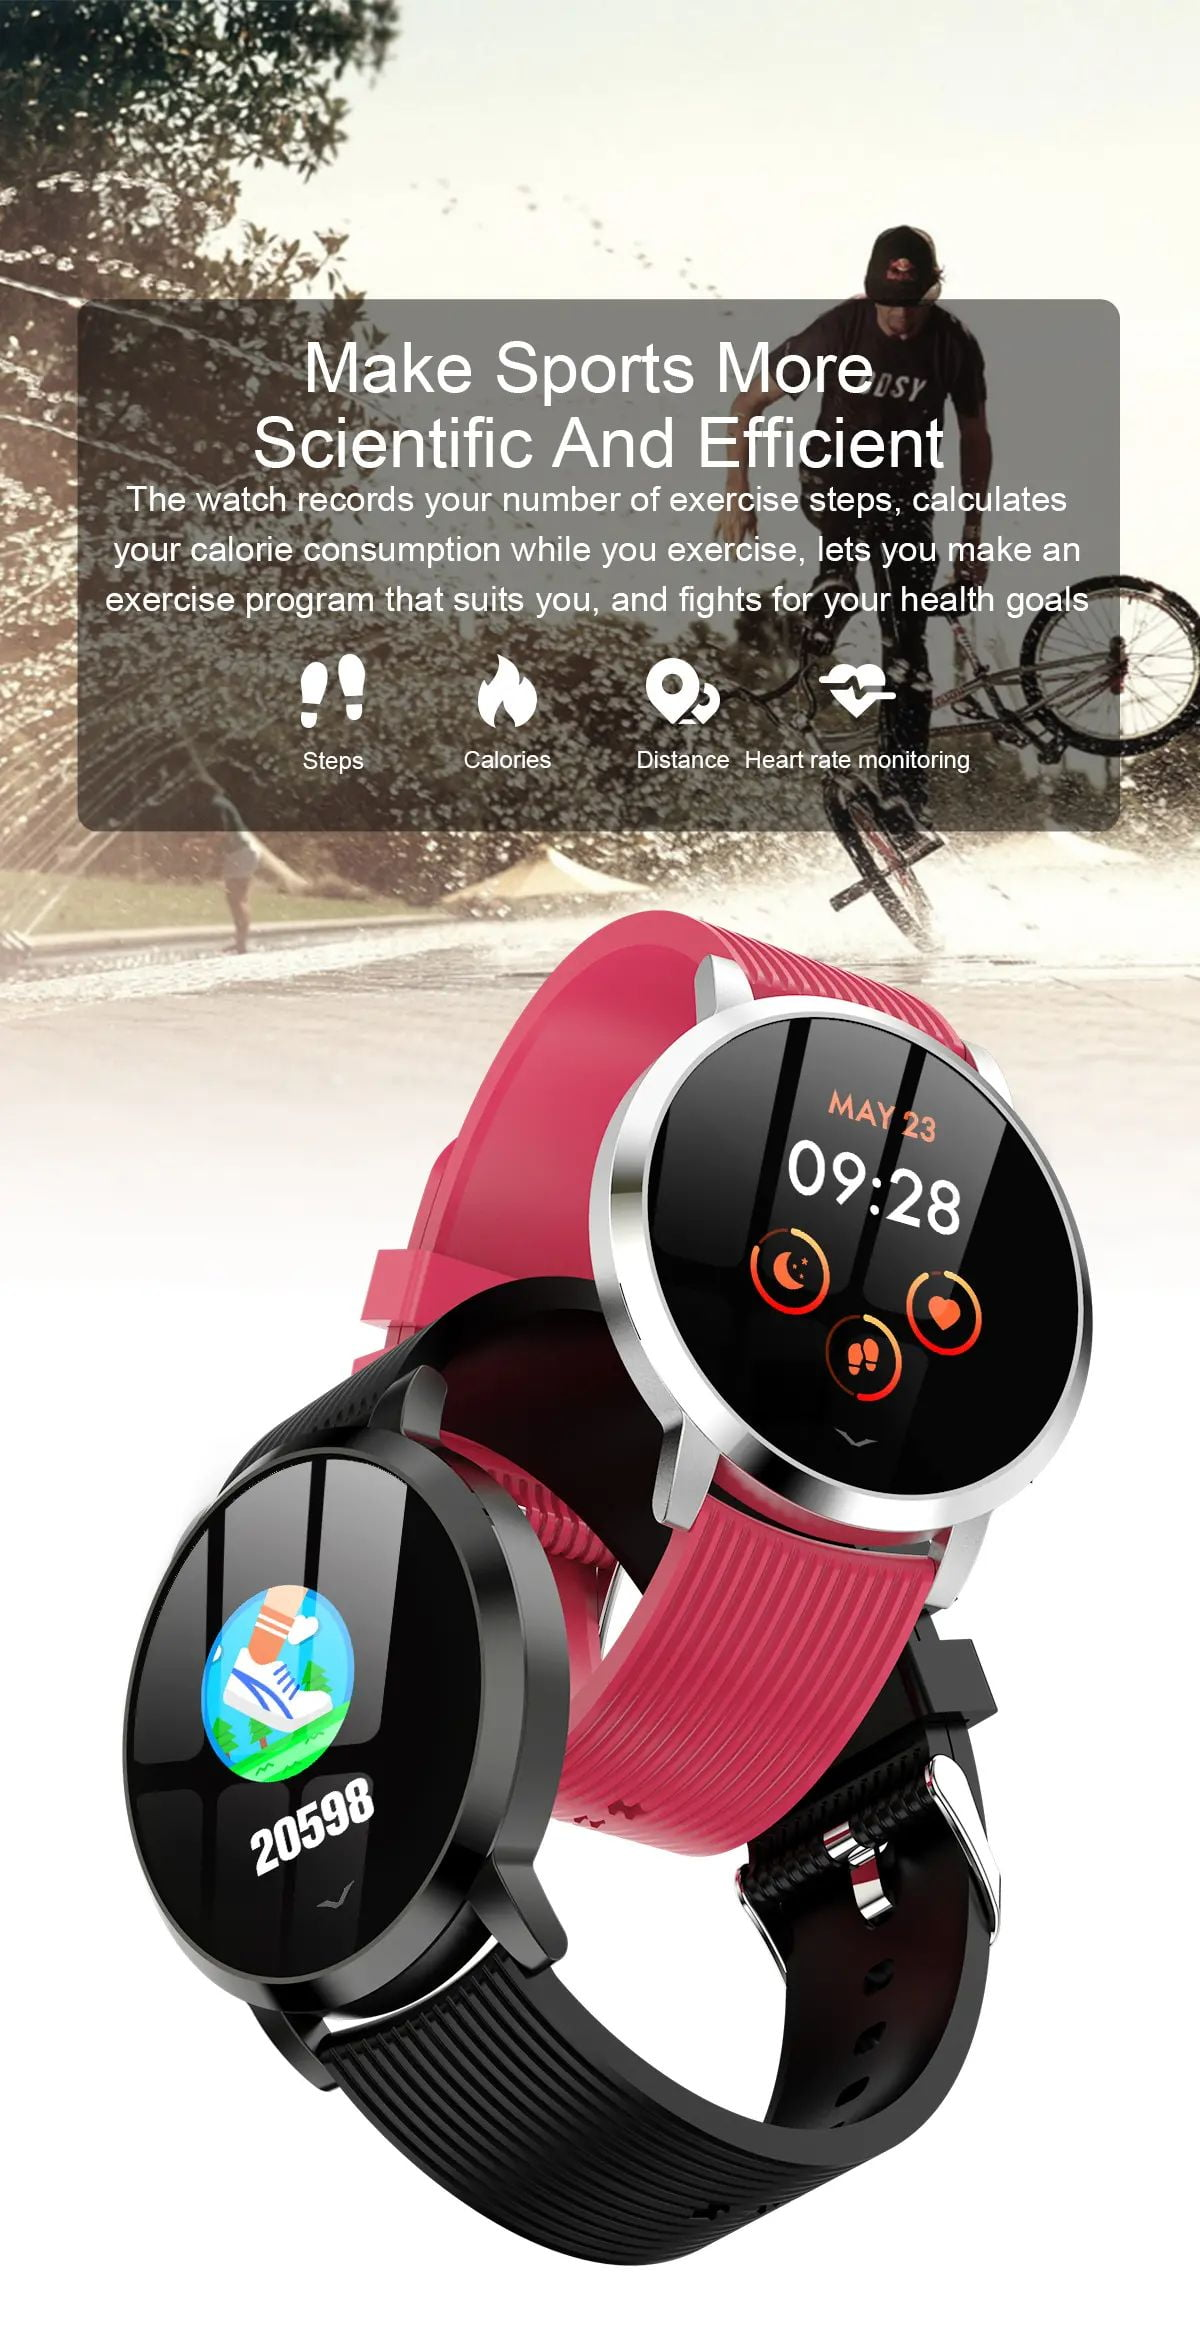 LV09 Smart Watch 1.3 inch custom dial real-time heart rate monitor (14)